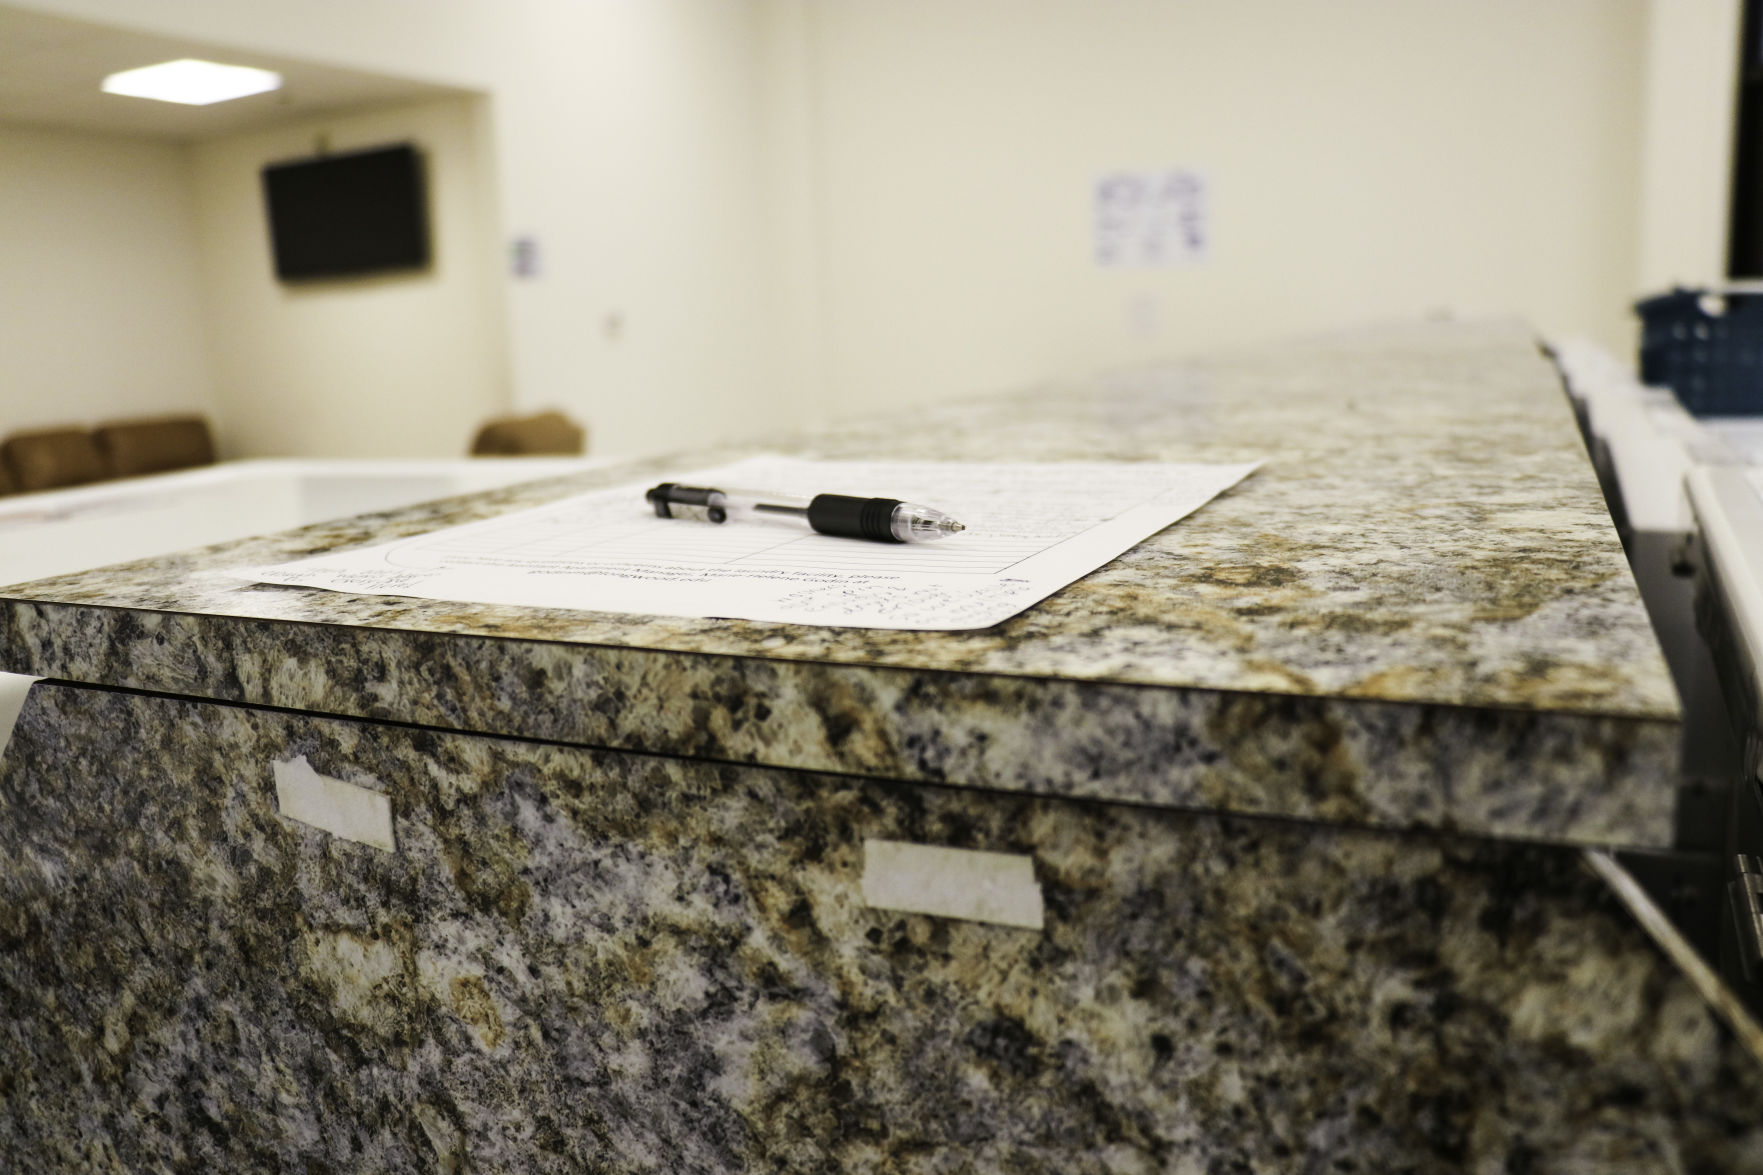 Laundry Room Countertop Material Petition Removed From Landings Laundry Room Rcl Officials Unaware